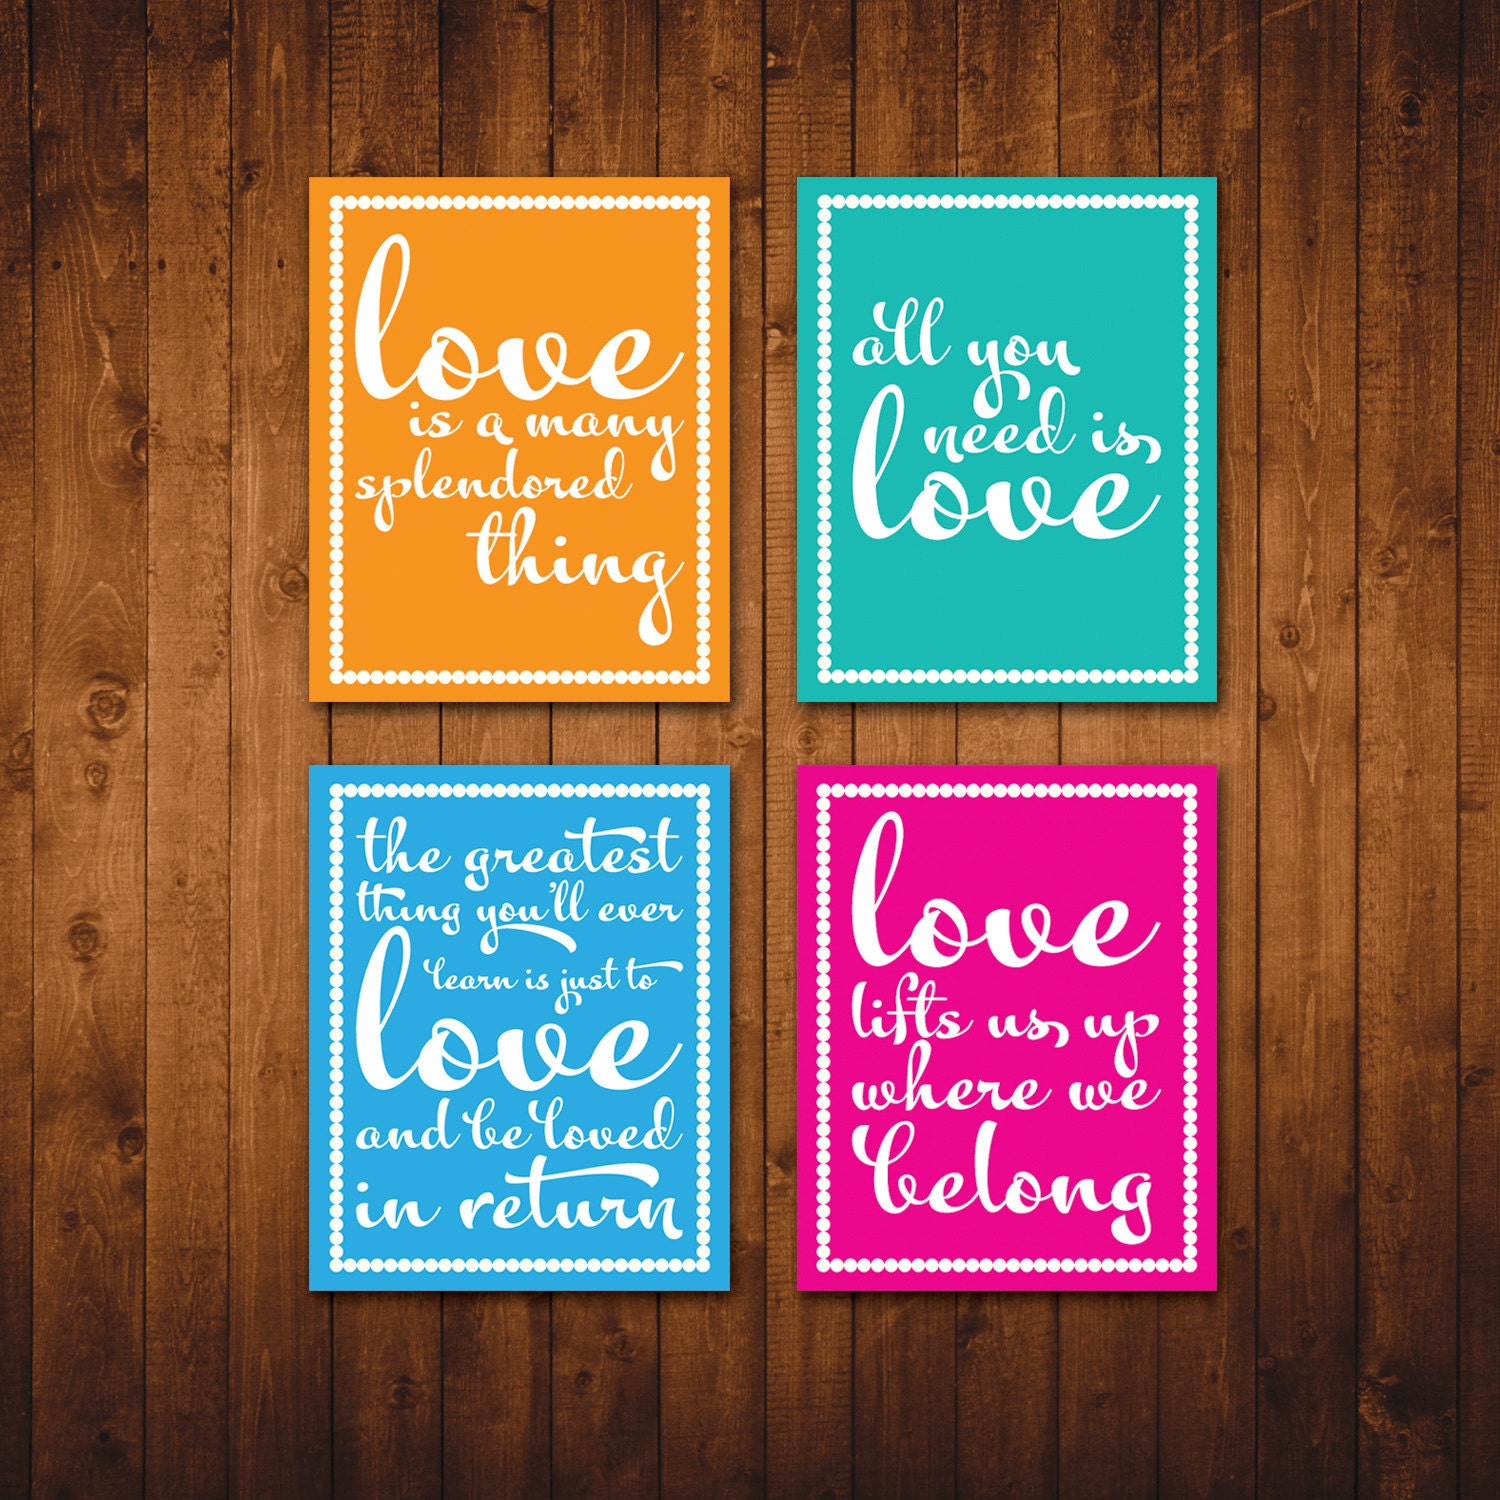 Love Quote Picture Frames Endearing Love Quotes On Picture Frames Frames With Quotes On Them